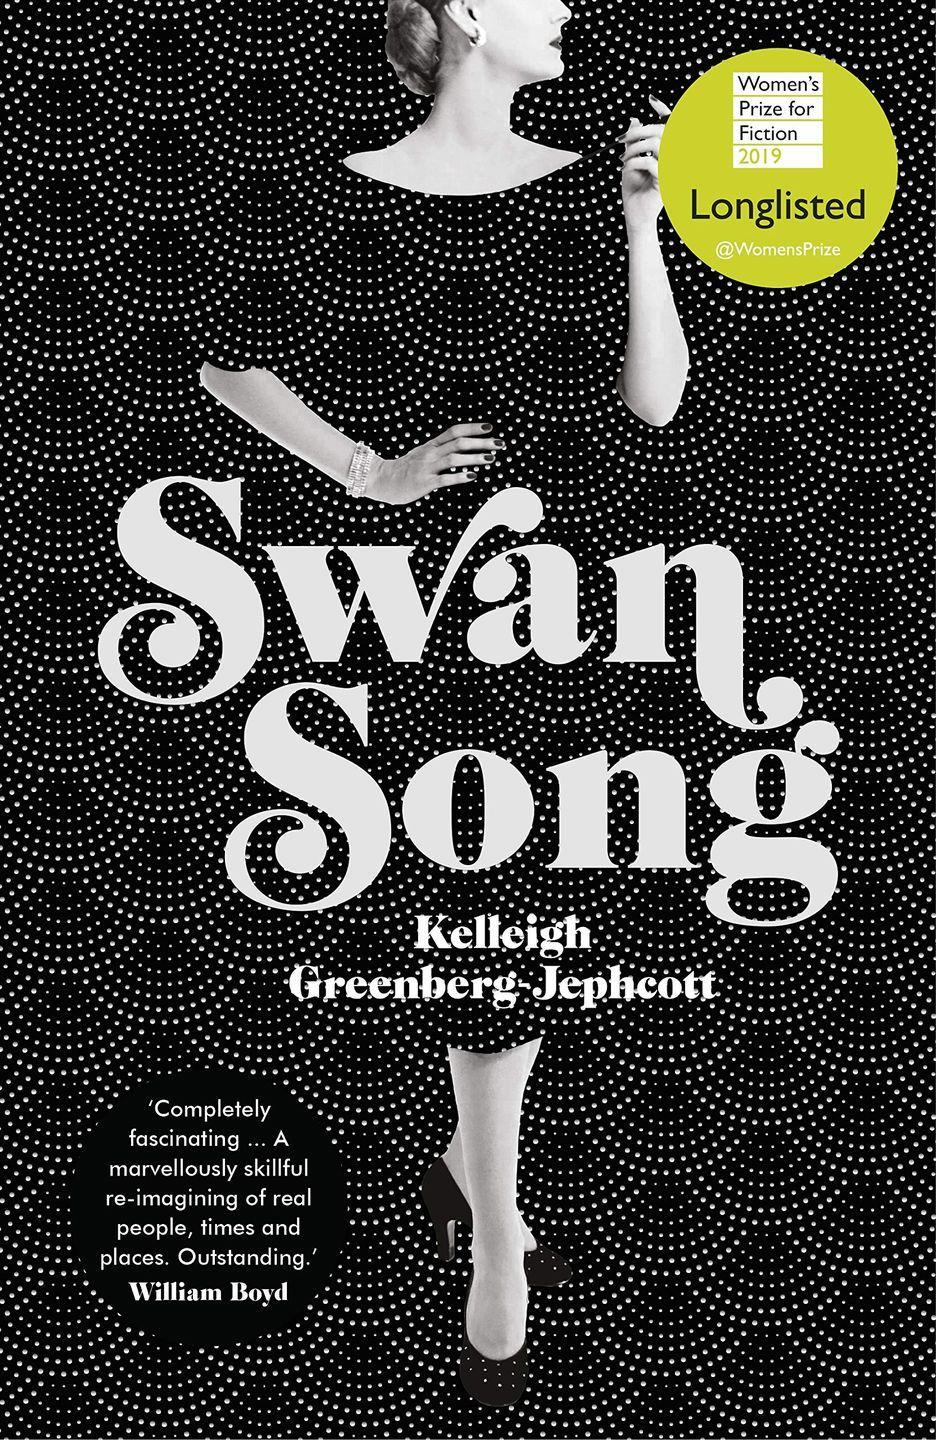 "<p>Jephcott's debut novel is based on the real life and events of Truman Capote. Swan Song is the tragic story of the literary icon of his age and the beautiful, wealthy, vulnerable women he called his Swans.<br></p><p><a class=""link rapid-noclick-resp"" href=""https://www.amazon.co.uk/Swan-Song-Kelleigh-Greenberg-Jephcott/dp/1786331055/ref=tmm_hrd_swatch_0?_encoding=UTF8&tag=hearstuk-yahoo-21&ascsubtag=%5Bartid%7C1921.g.32141605%5Bsrc%7Cyahoo-uk"" rel=""nofollow noopener"" target=""_blank"" data-ylk=""slk:SHOP NOW"">SHOP NOW</a></p>"